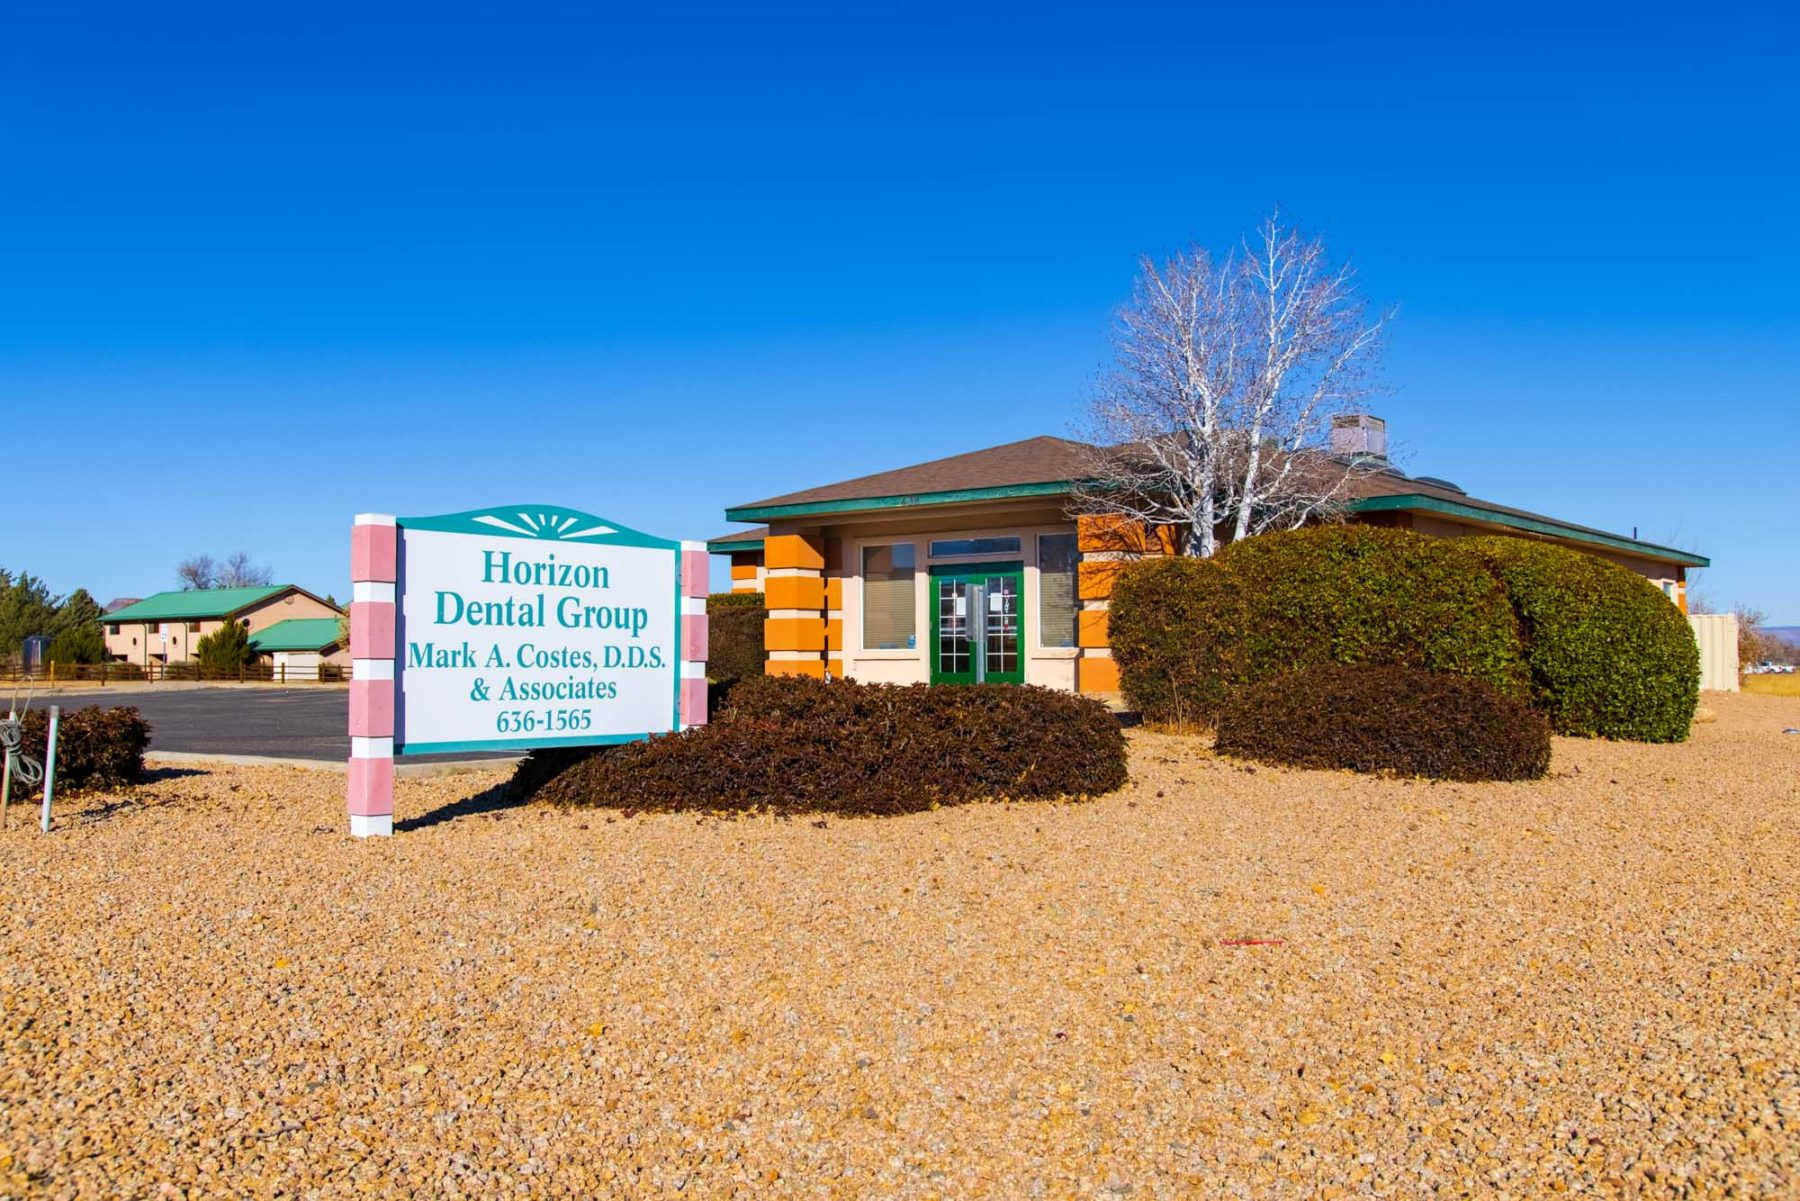 Exterior of the Horizon Dental Group office in Chino Valley, AZ